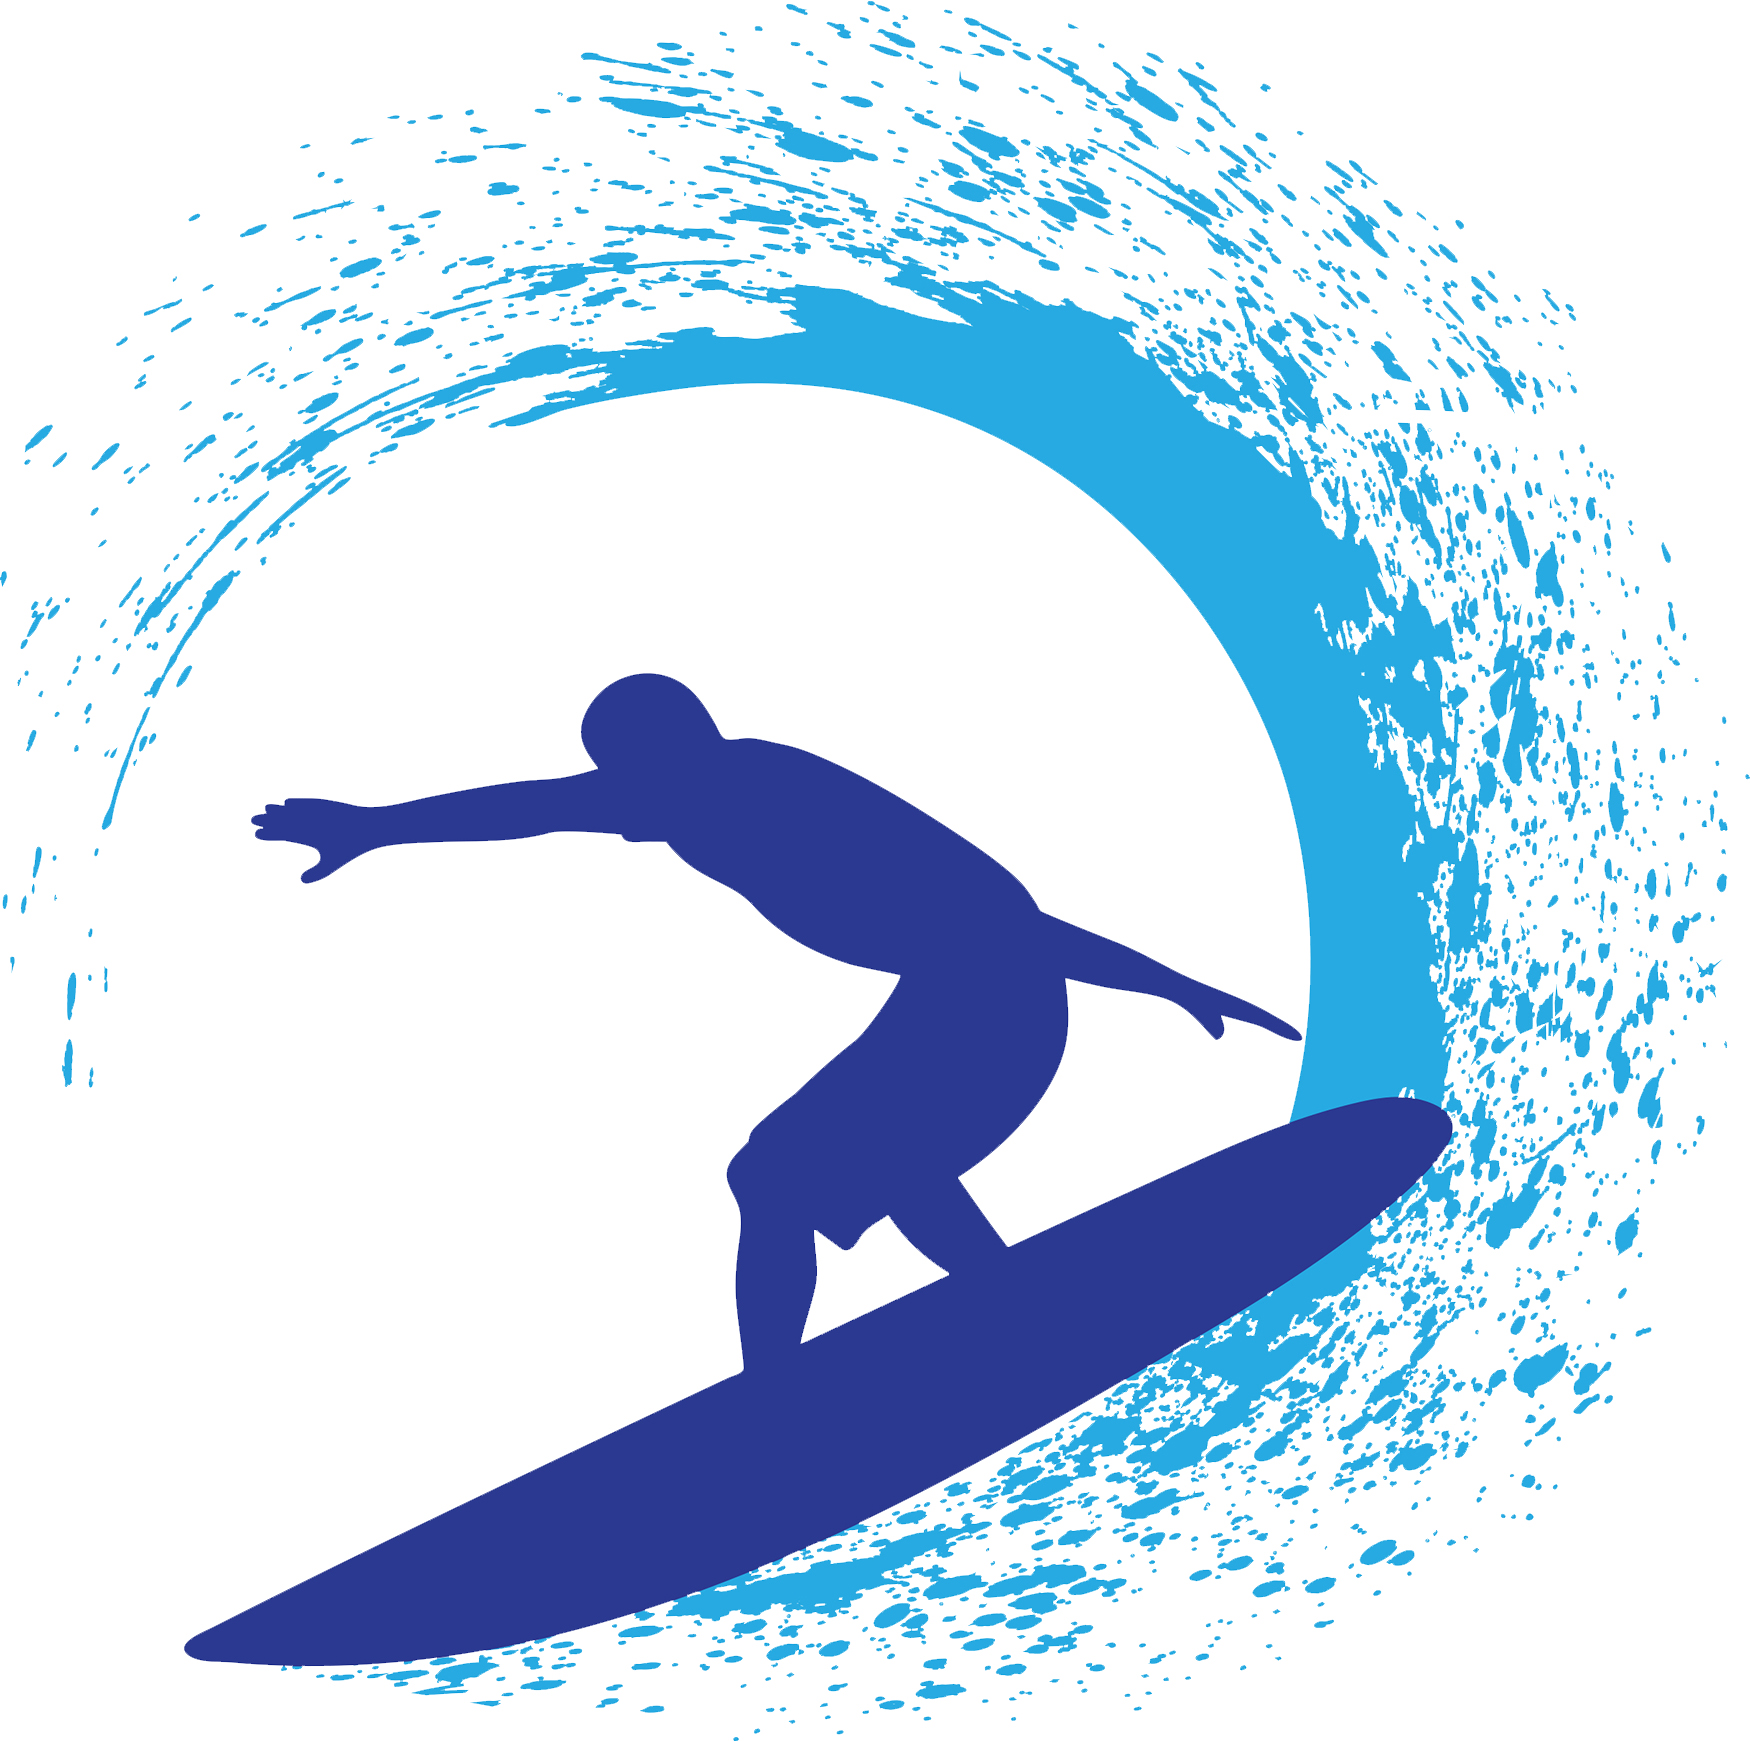 Surf clipart image free library Surf Clipart | Free download best Surf Clipart on ClipArtMag.com image free library